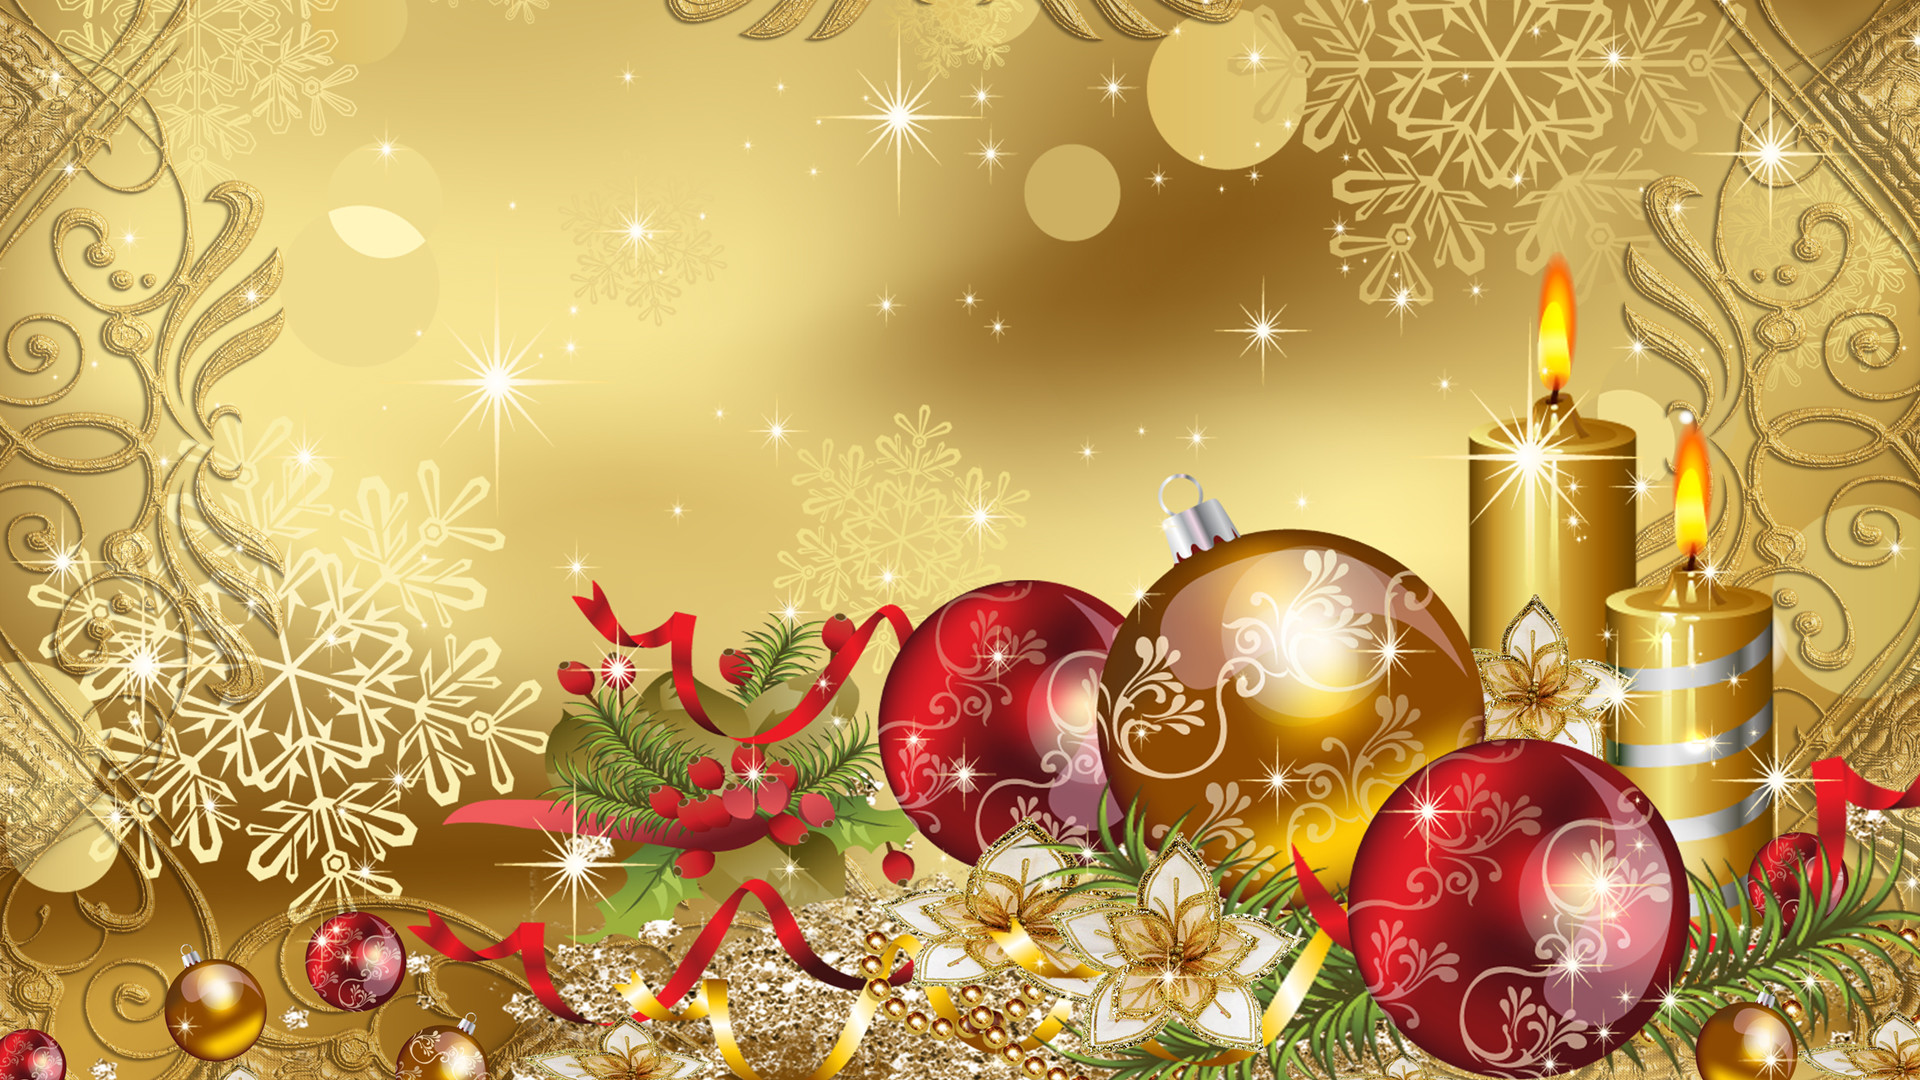 christmas desktop wallpaper free hd - drive.cheapusedmotorhome